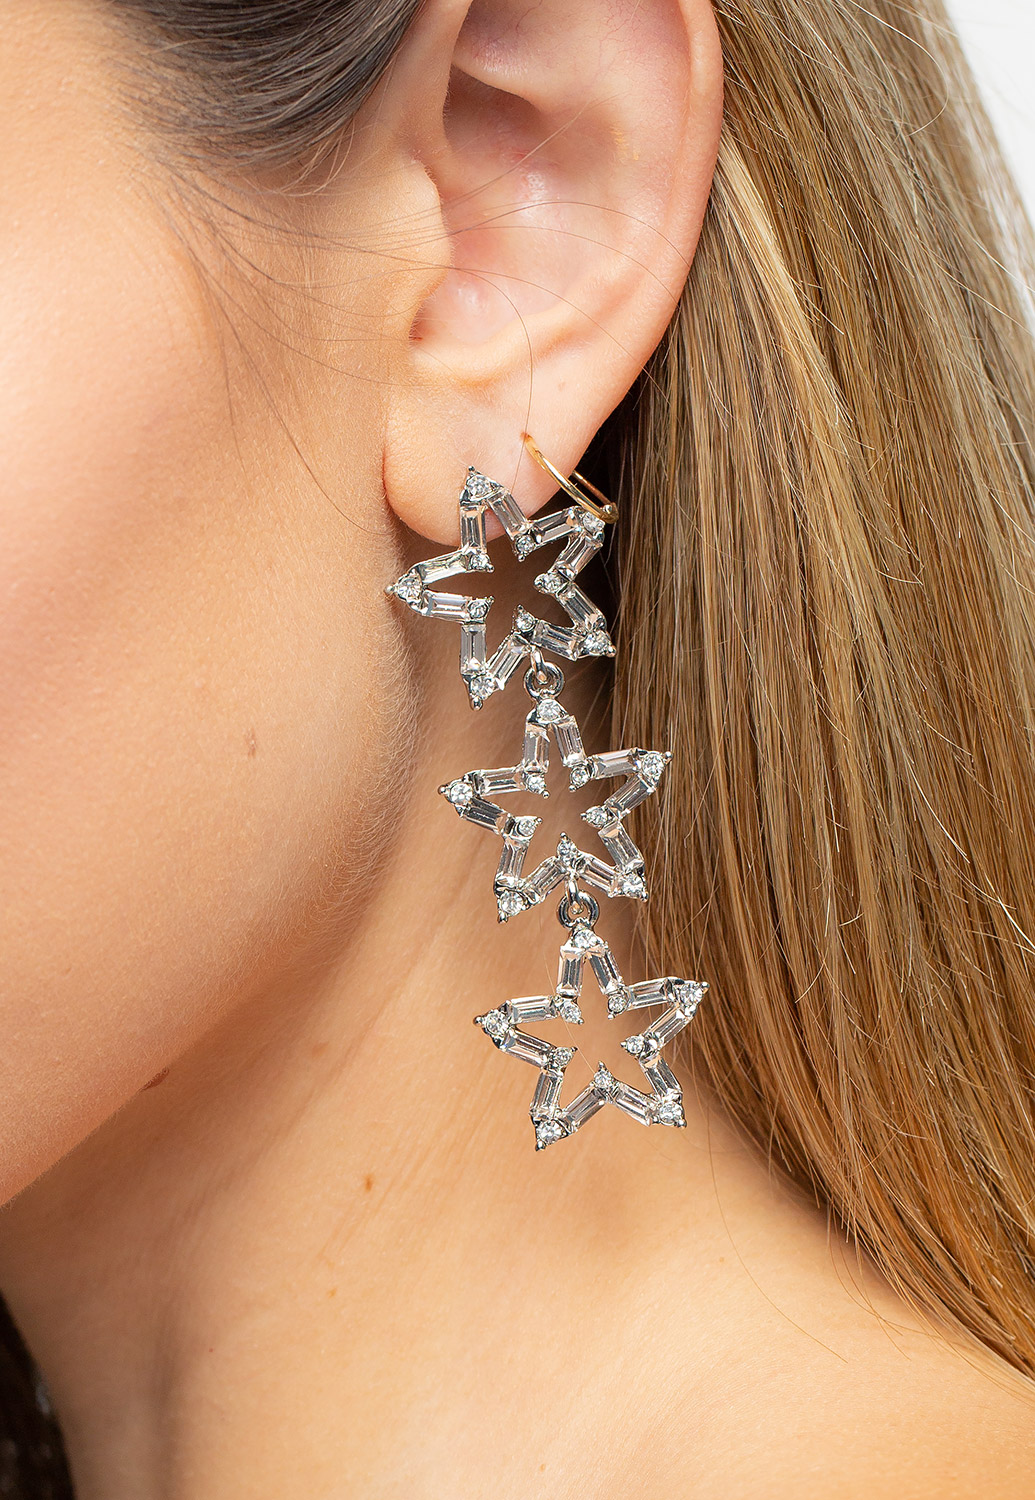 Three Stars Earrings